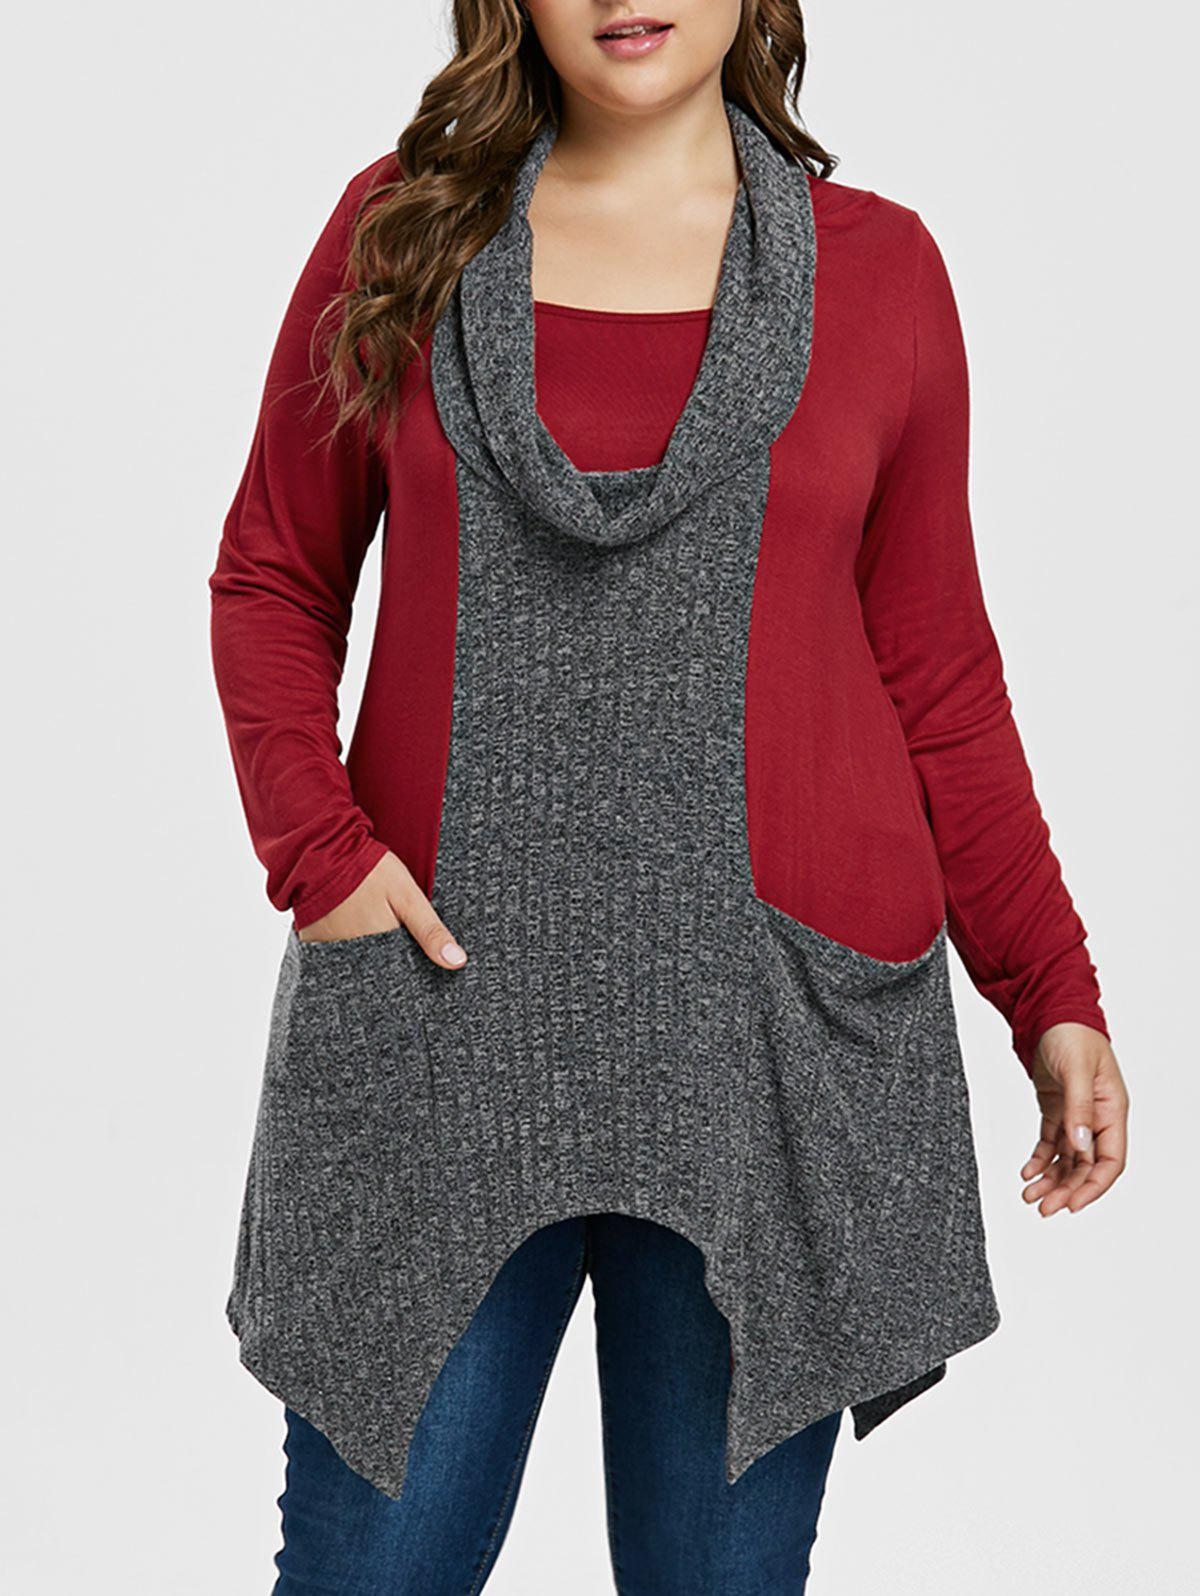 Fancy Plus Size Cowl Neck Handkerchief T-shirt